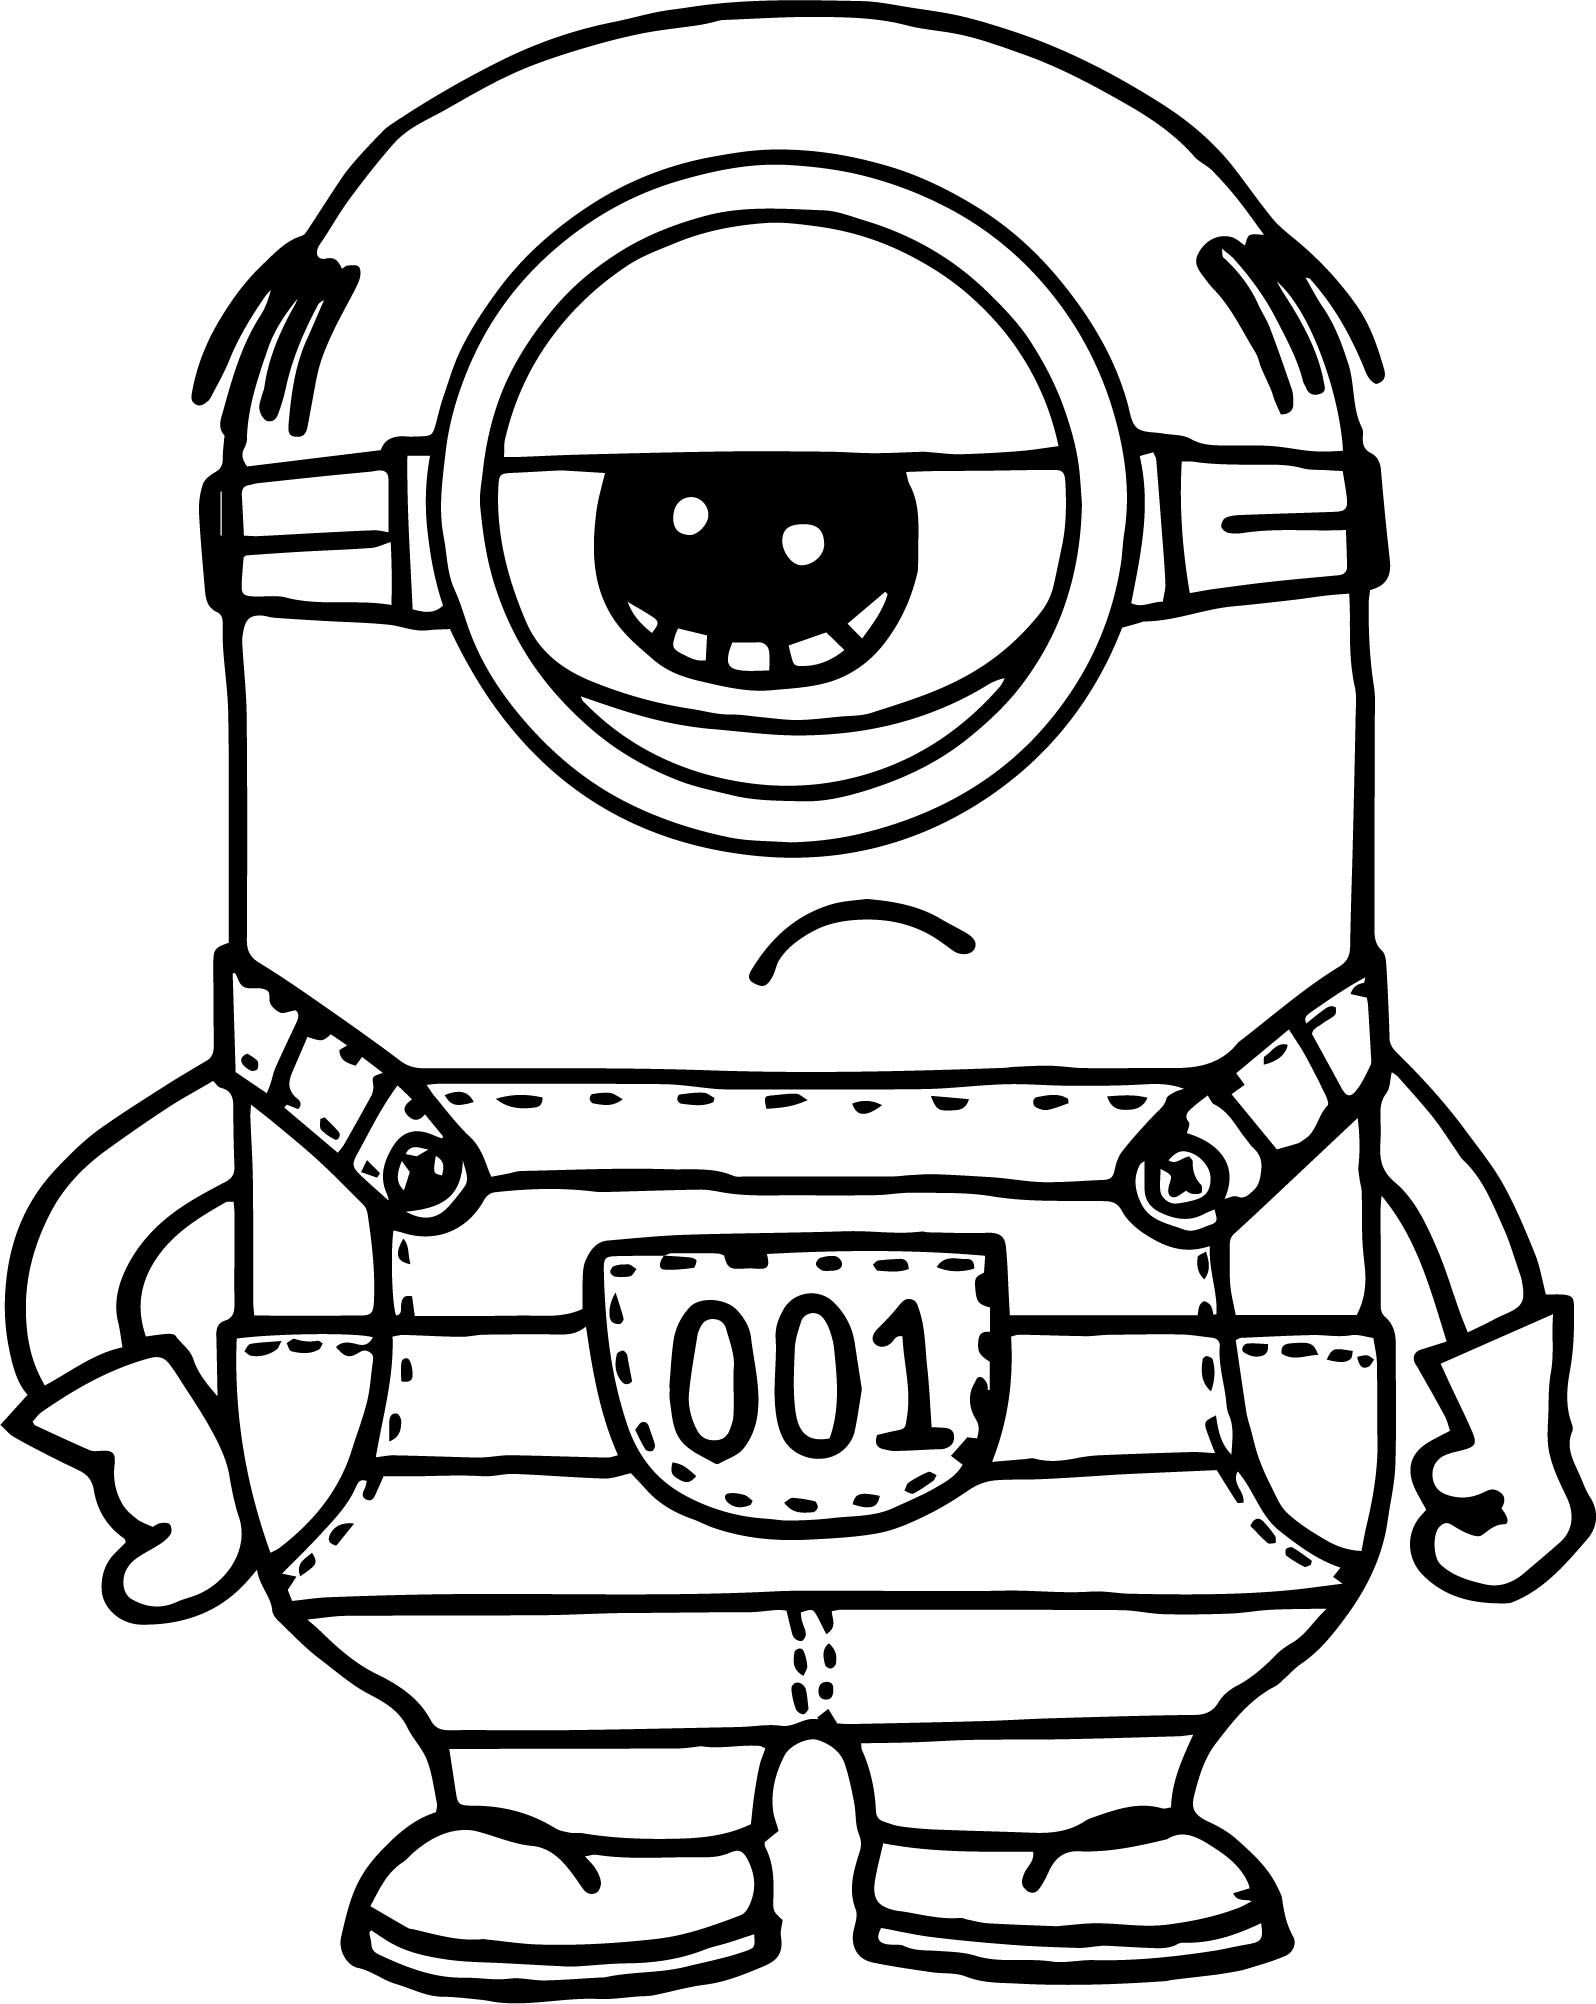 Cool Despicable Me 3 Minion Coloring Page Minion Coloring Pages